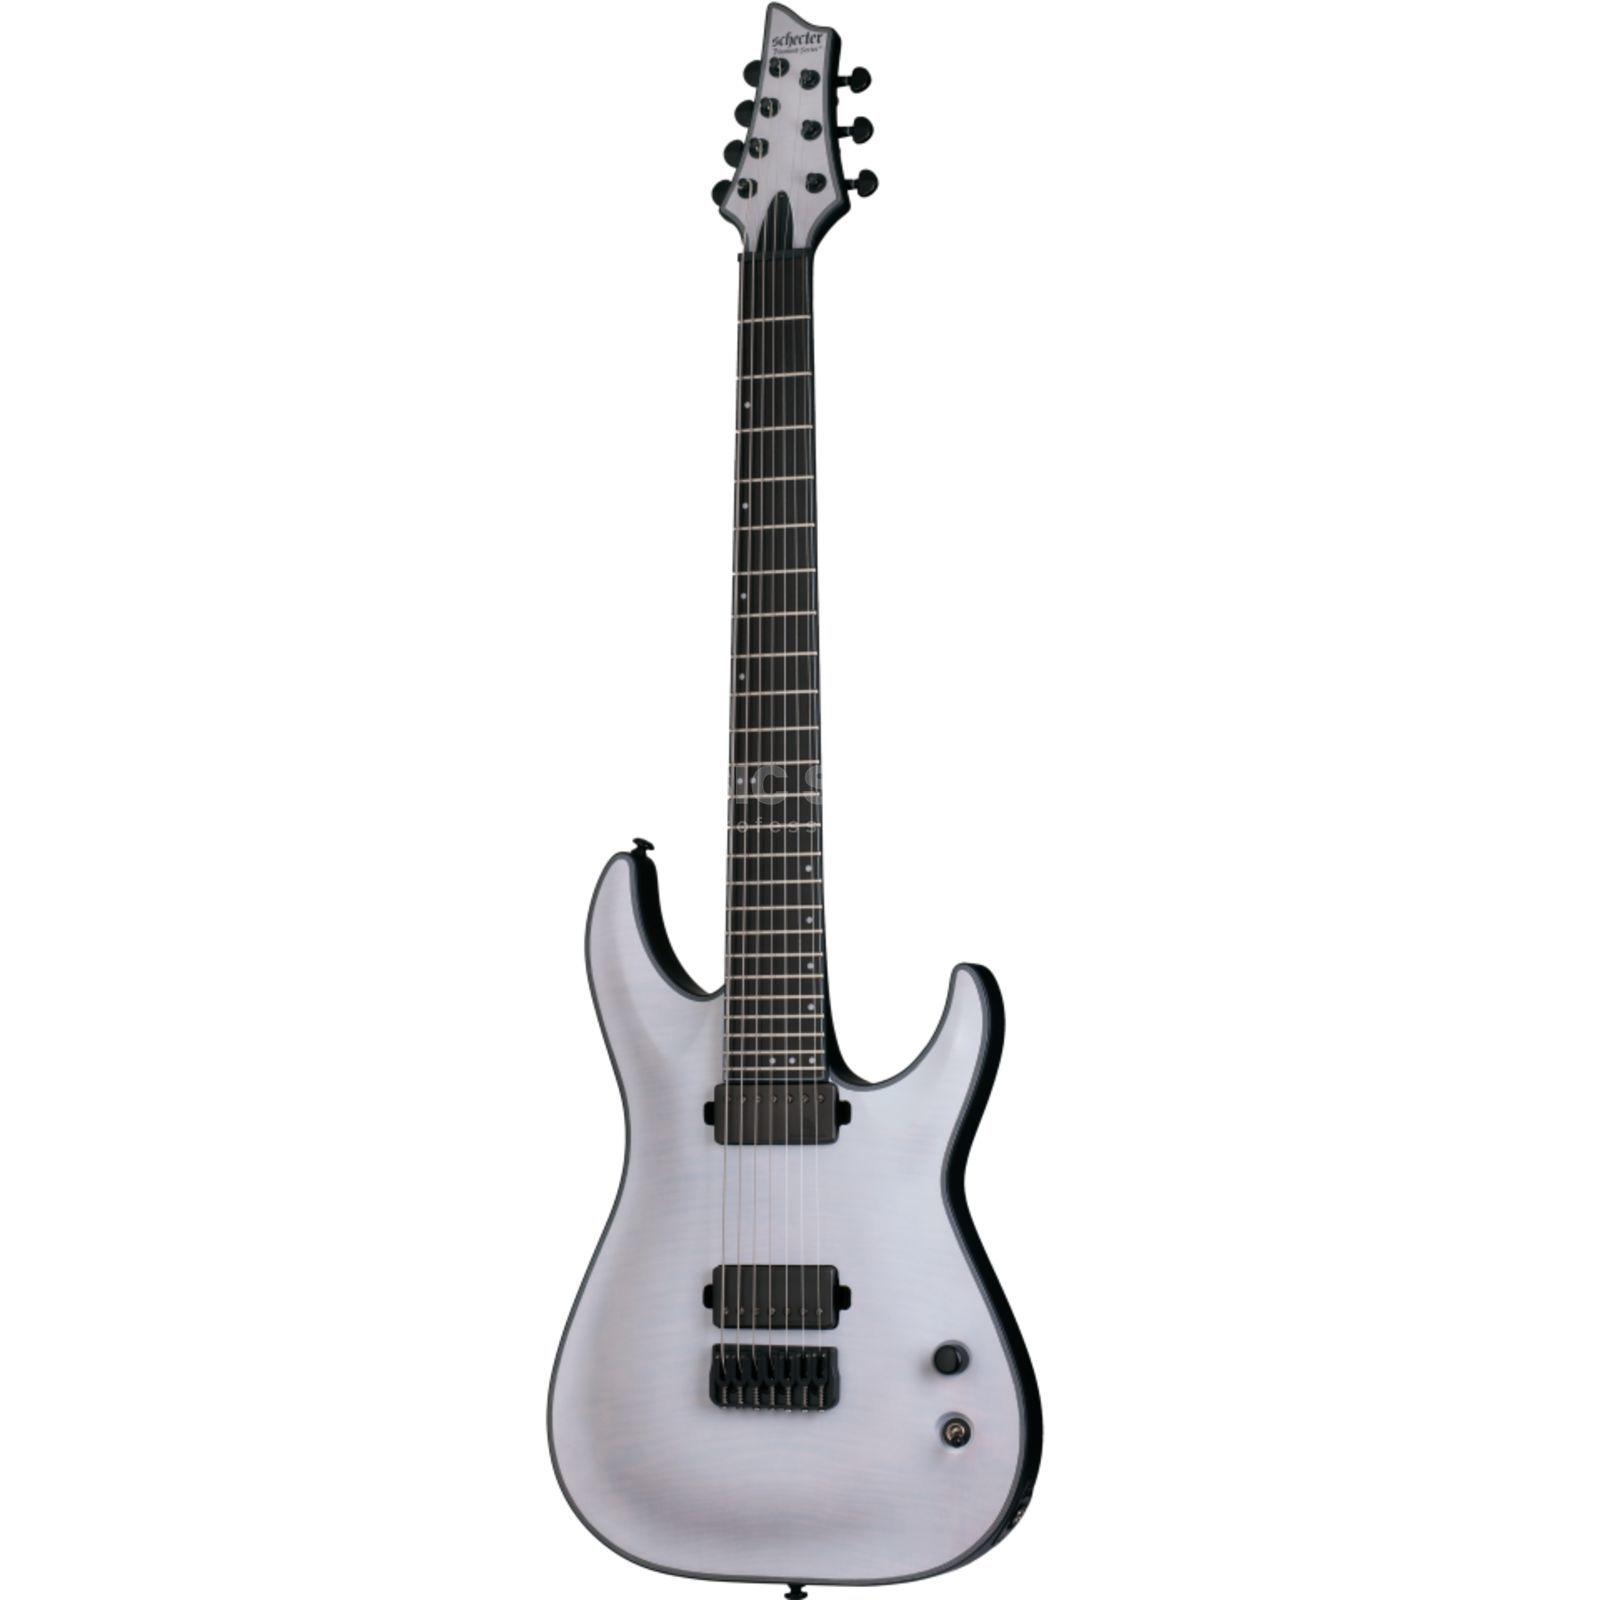 Schecter Keith Merrow KM-7 Trans White Satin Изображение товара